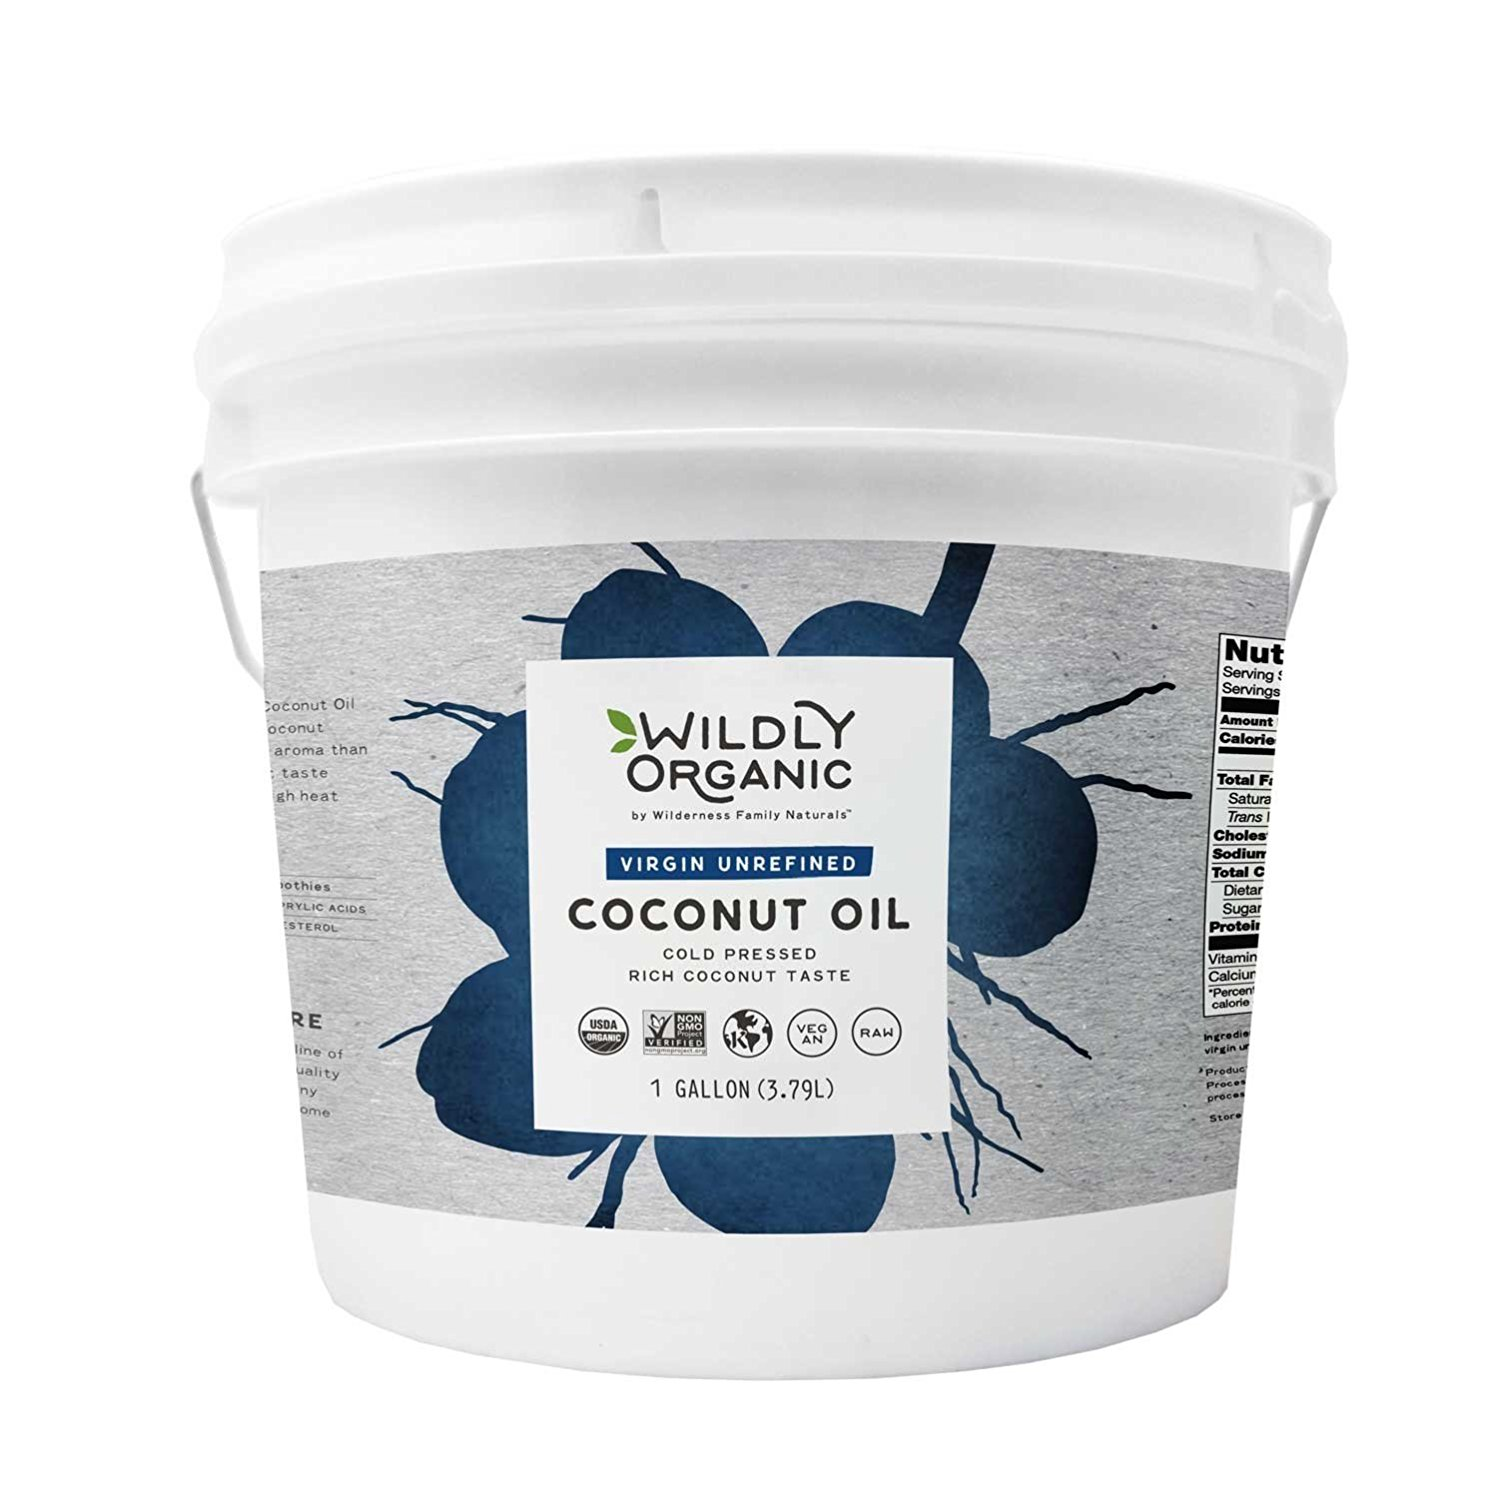 Buying coconut oil in bulk is wise when you use it for everything!